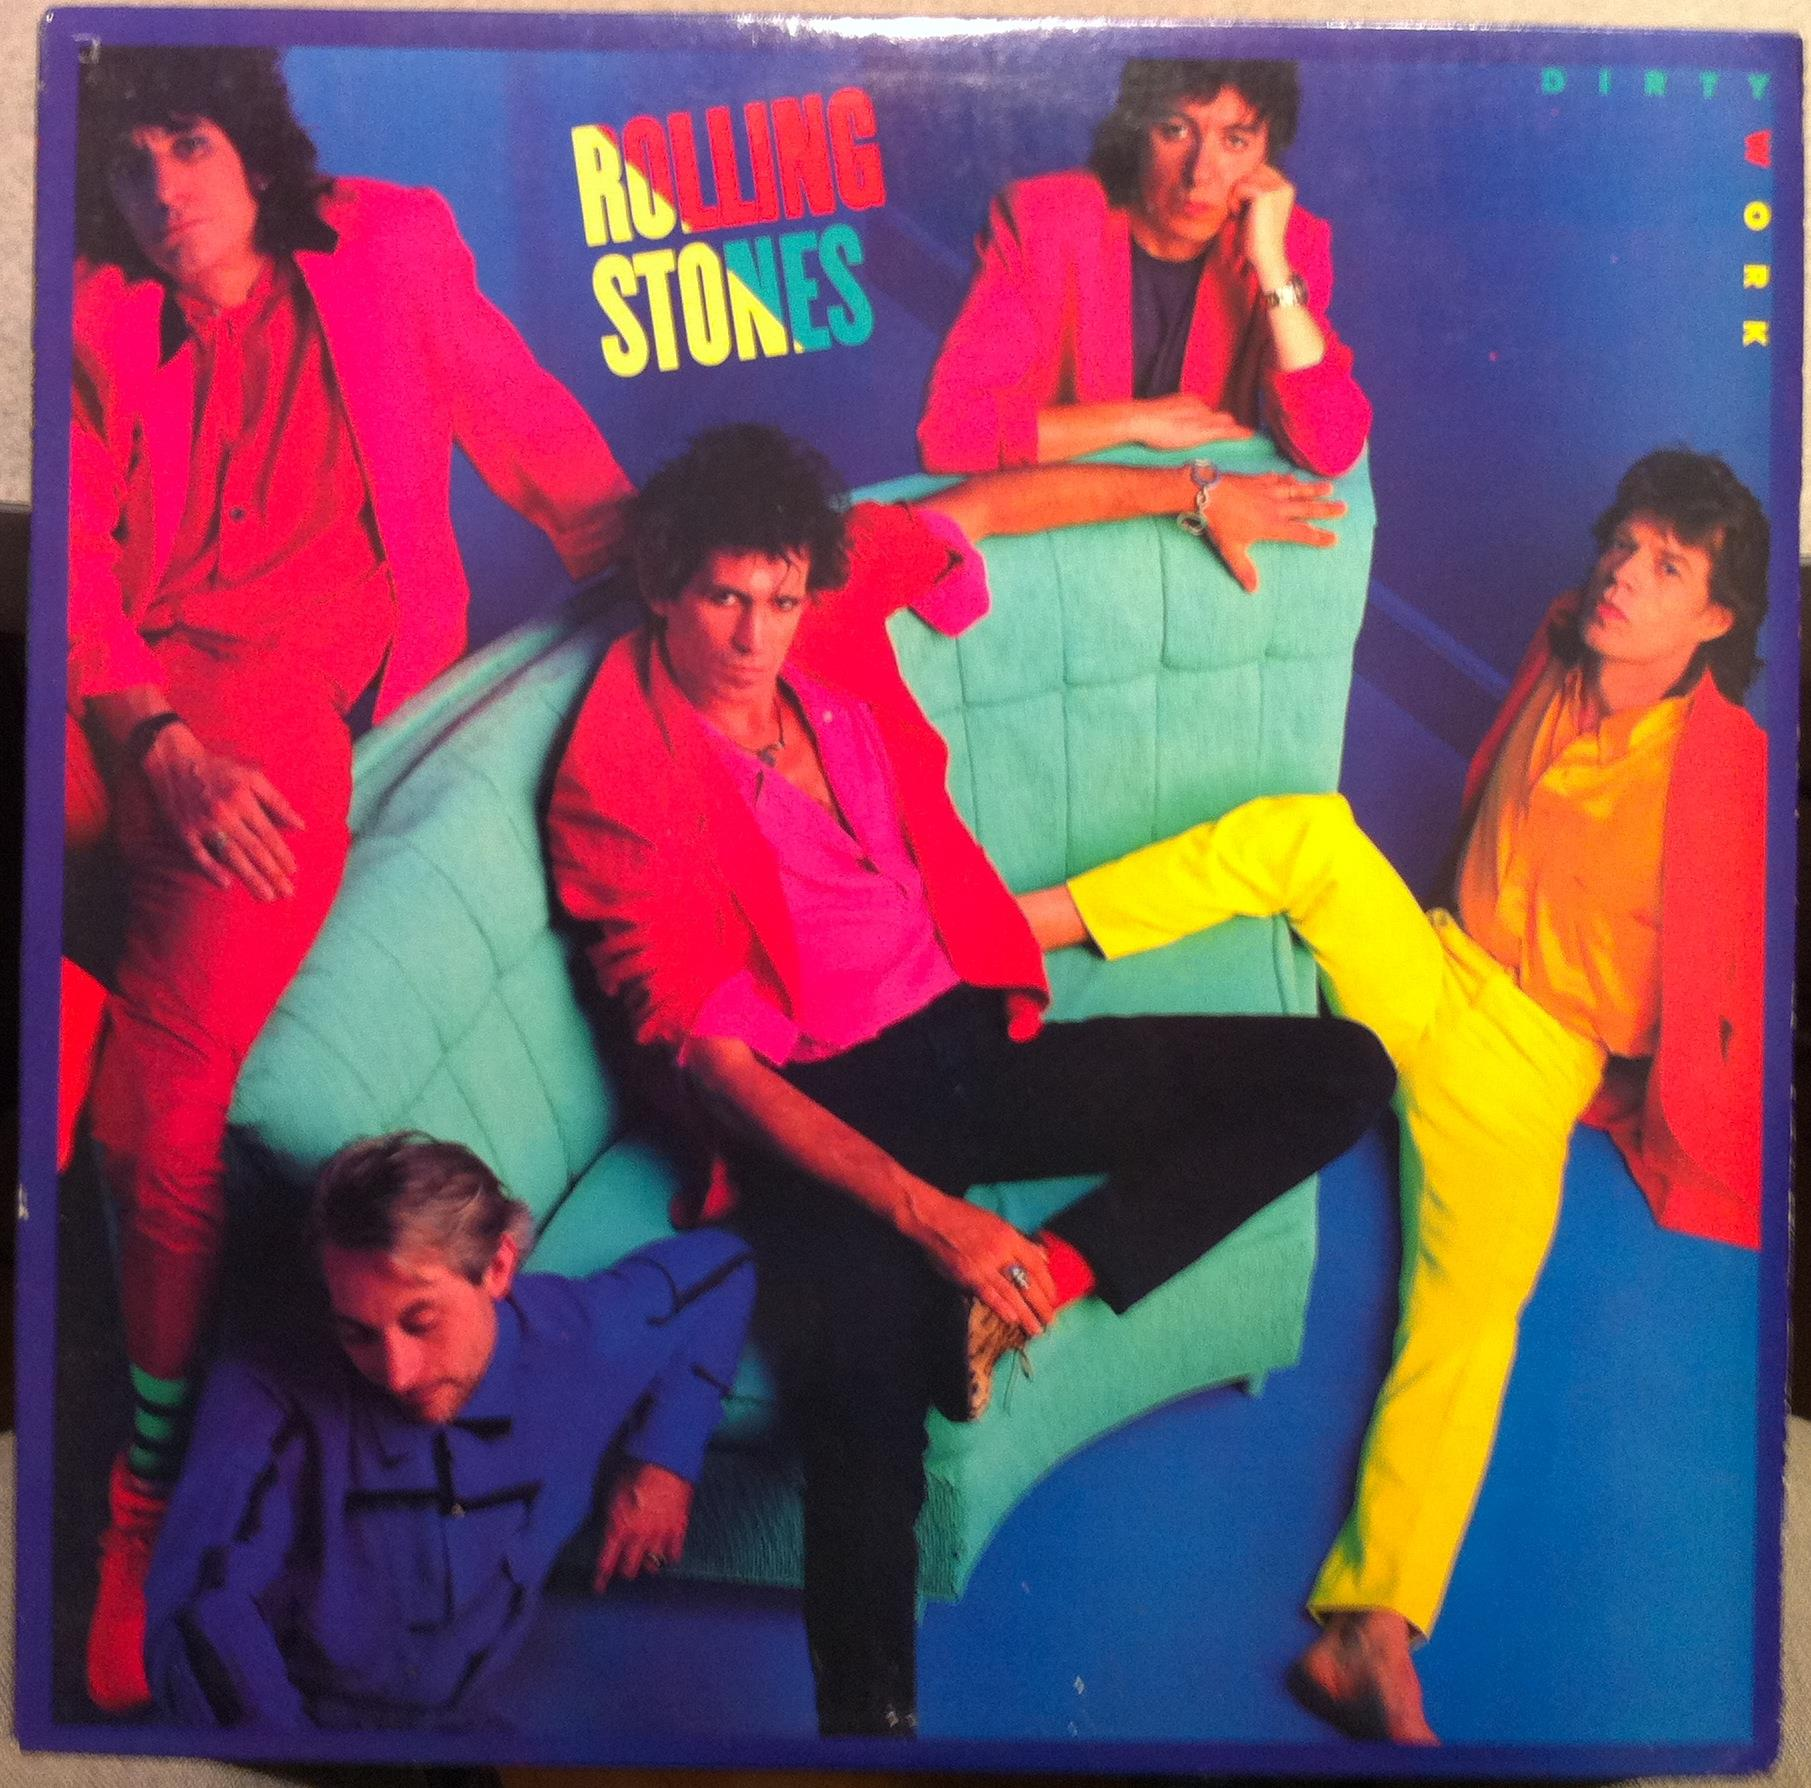 Rolling Stones - The Rolling Stones Dirty Work Lp Mint- Oc 40250 Bob Ludwig Rl Mastered Usa 1986 (dirty Work)